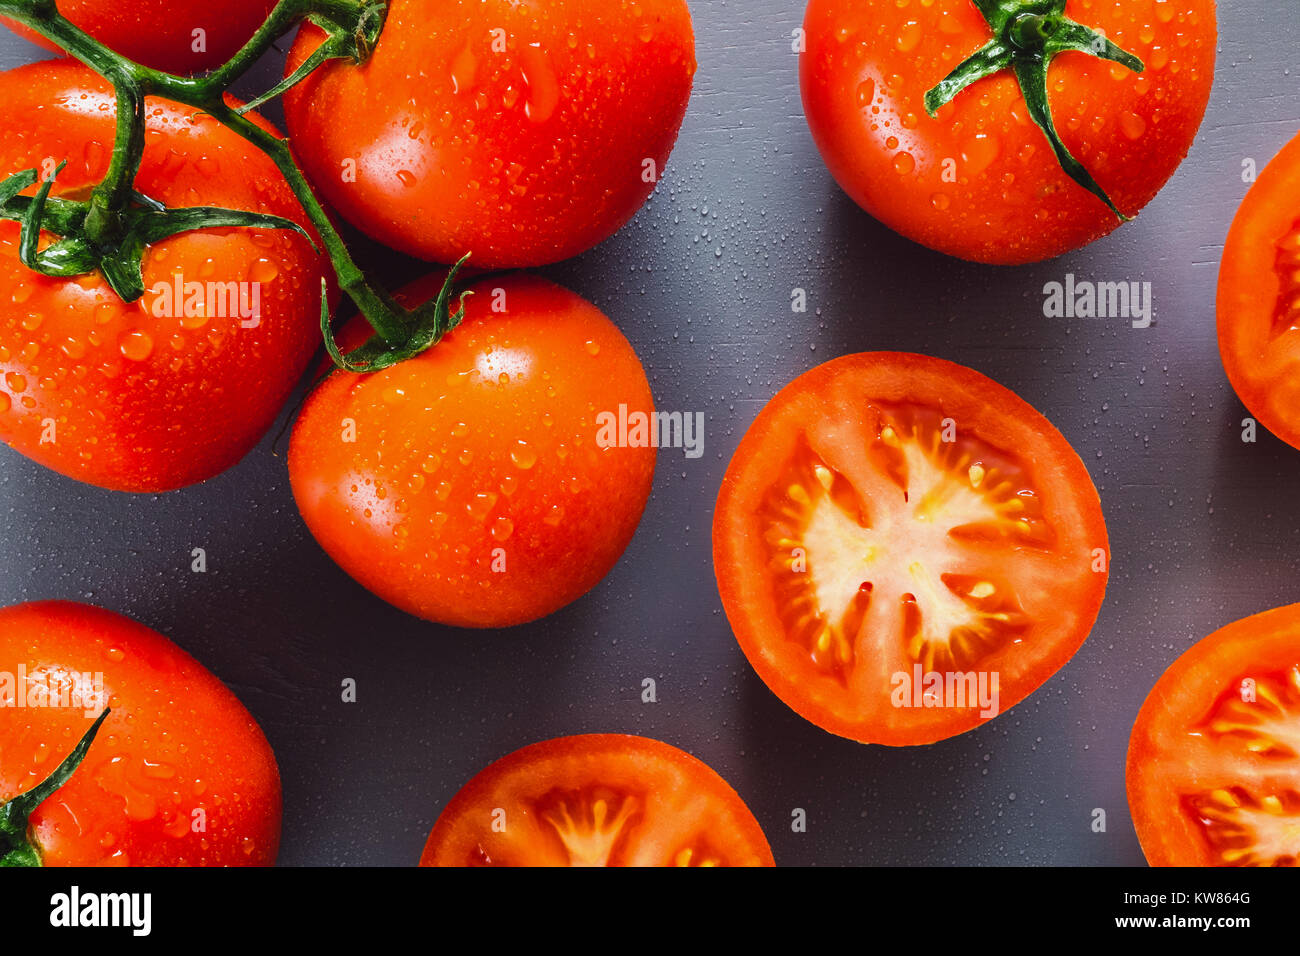 Freshly Washed and Sliced Tomatoes on Blue Table - Stock Image